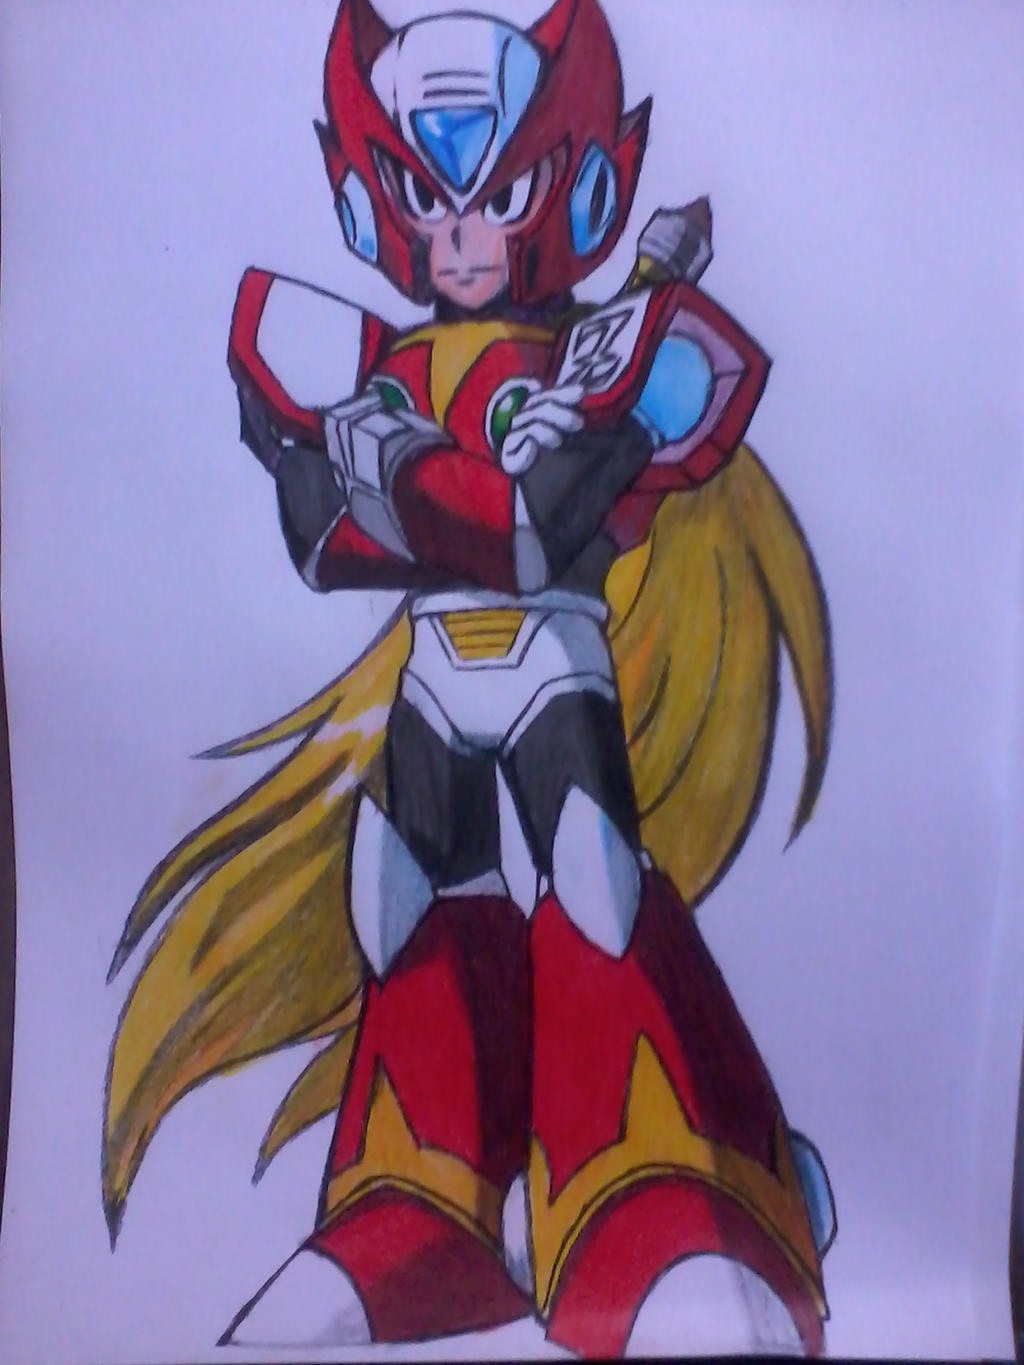 Zero Megaman by ArliissonxD